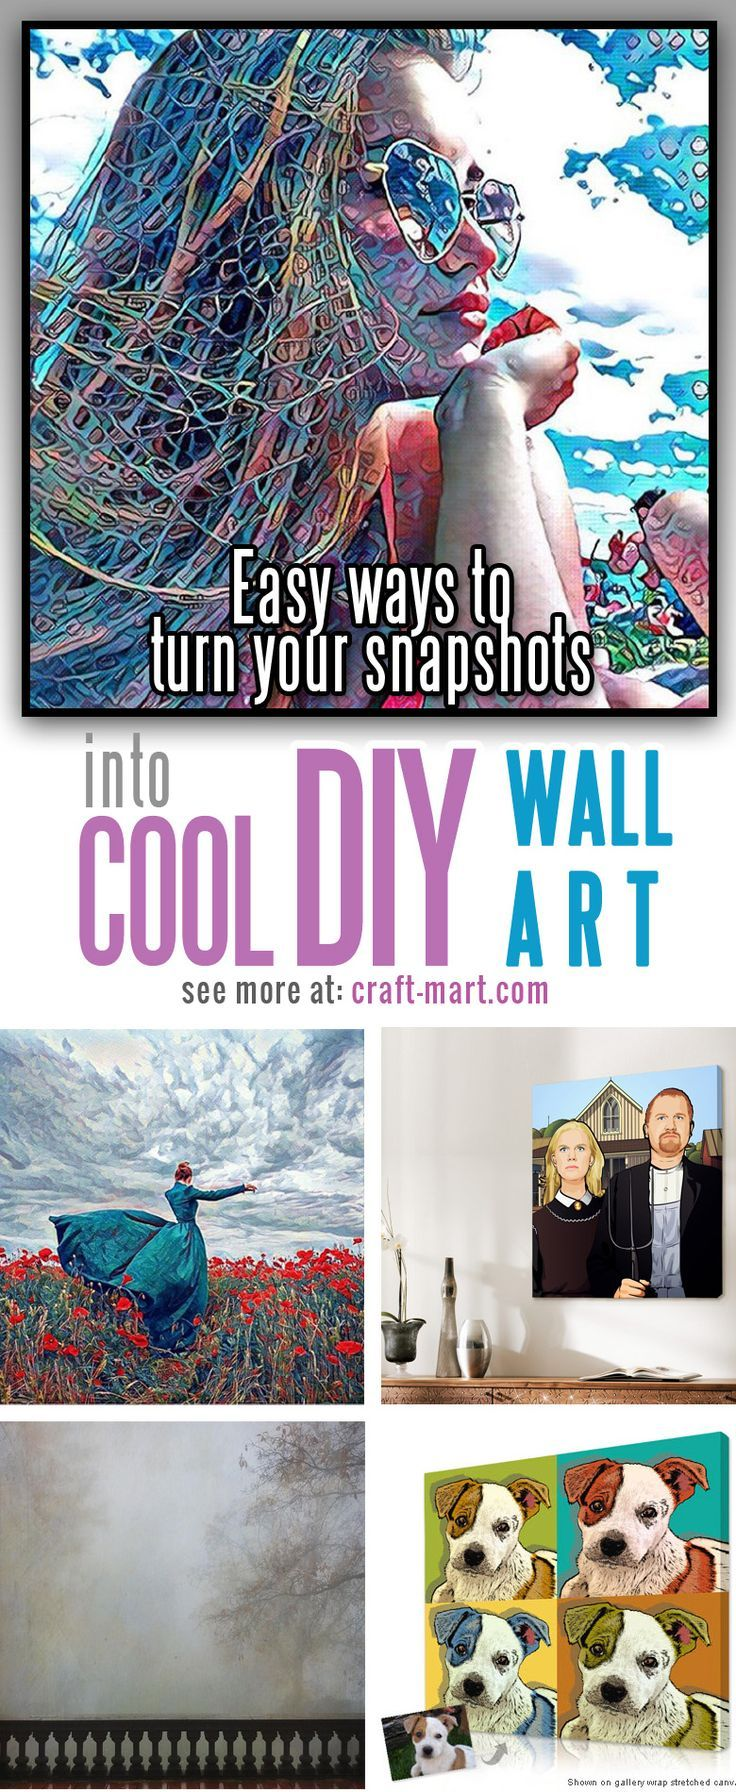 Super easy ways to turn your snapshots into an amazing diy wall art